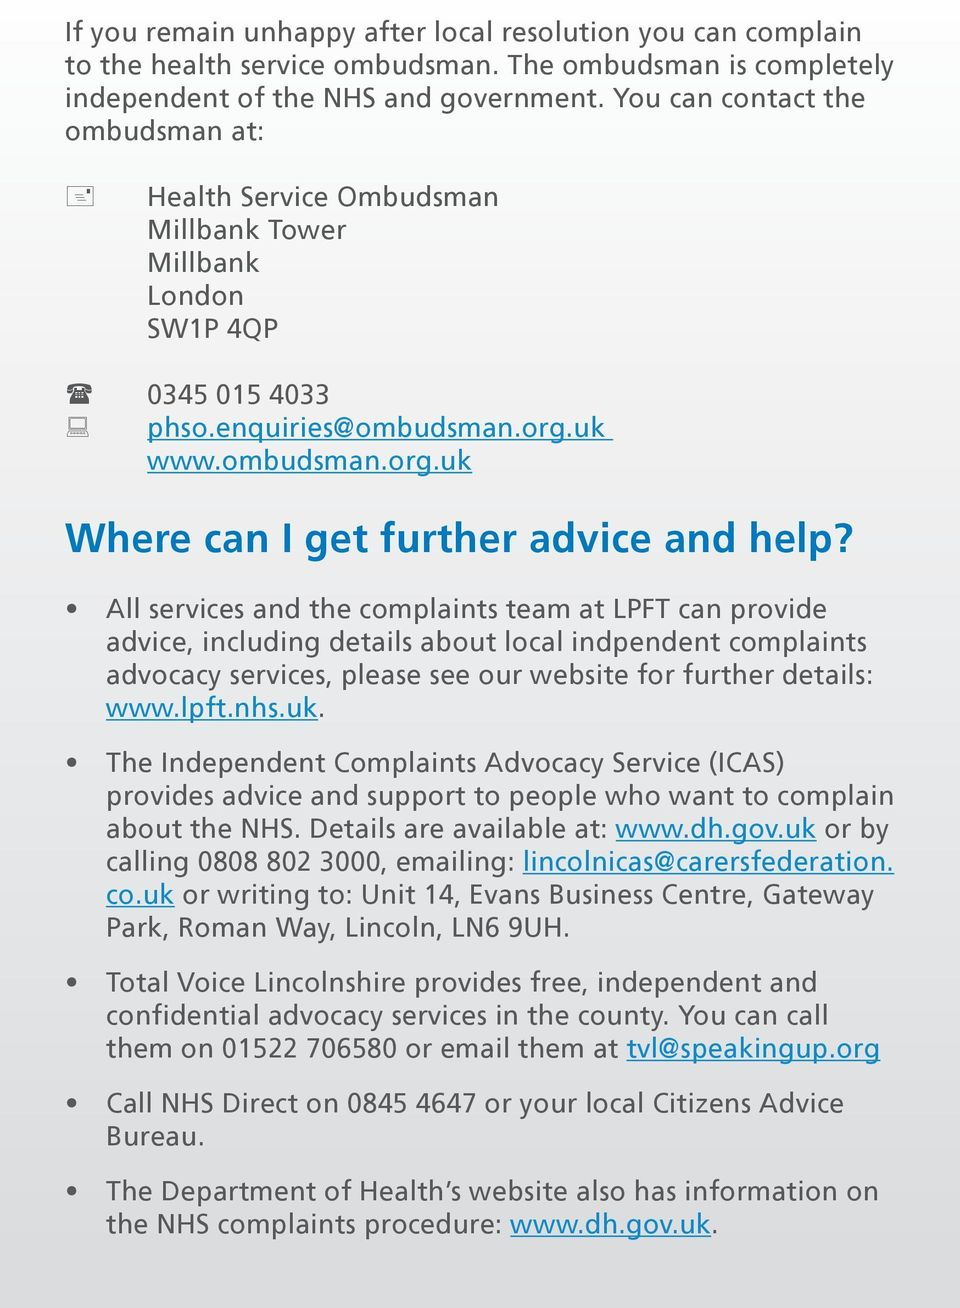 All services and the complaints team at LPFT can provide advice, including details about local indpendent complaints advocacy services, please see our website for further details: www.lpft.nhs.uk.